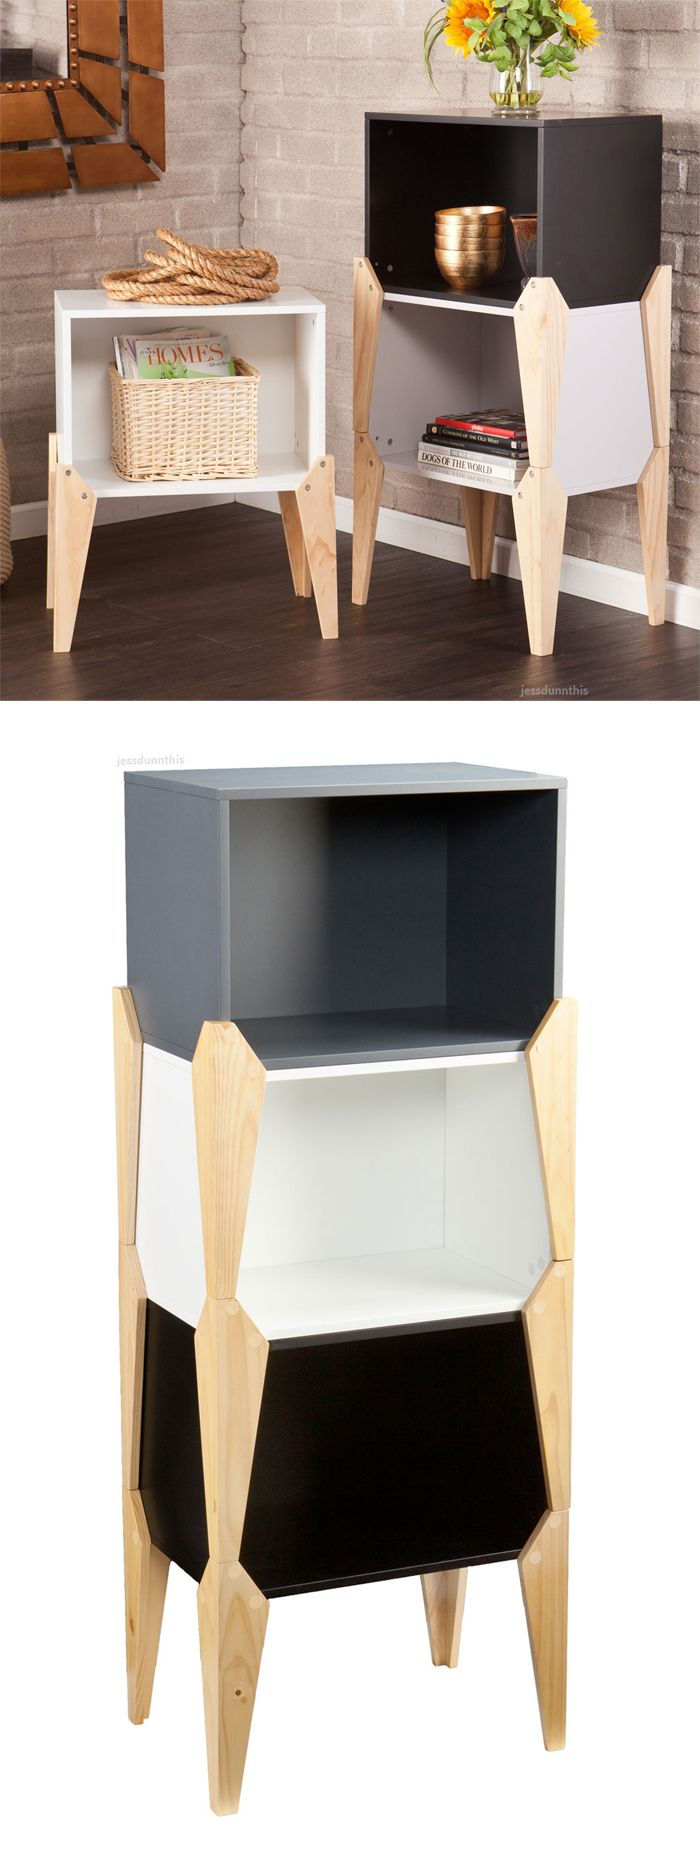 Stackable side tables   such a great idea    furniture design. Stackable side tables   such a great idea    furniture design